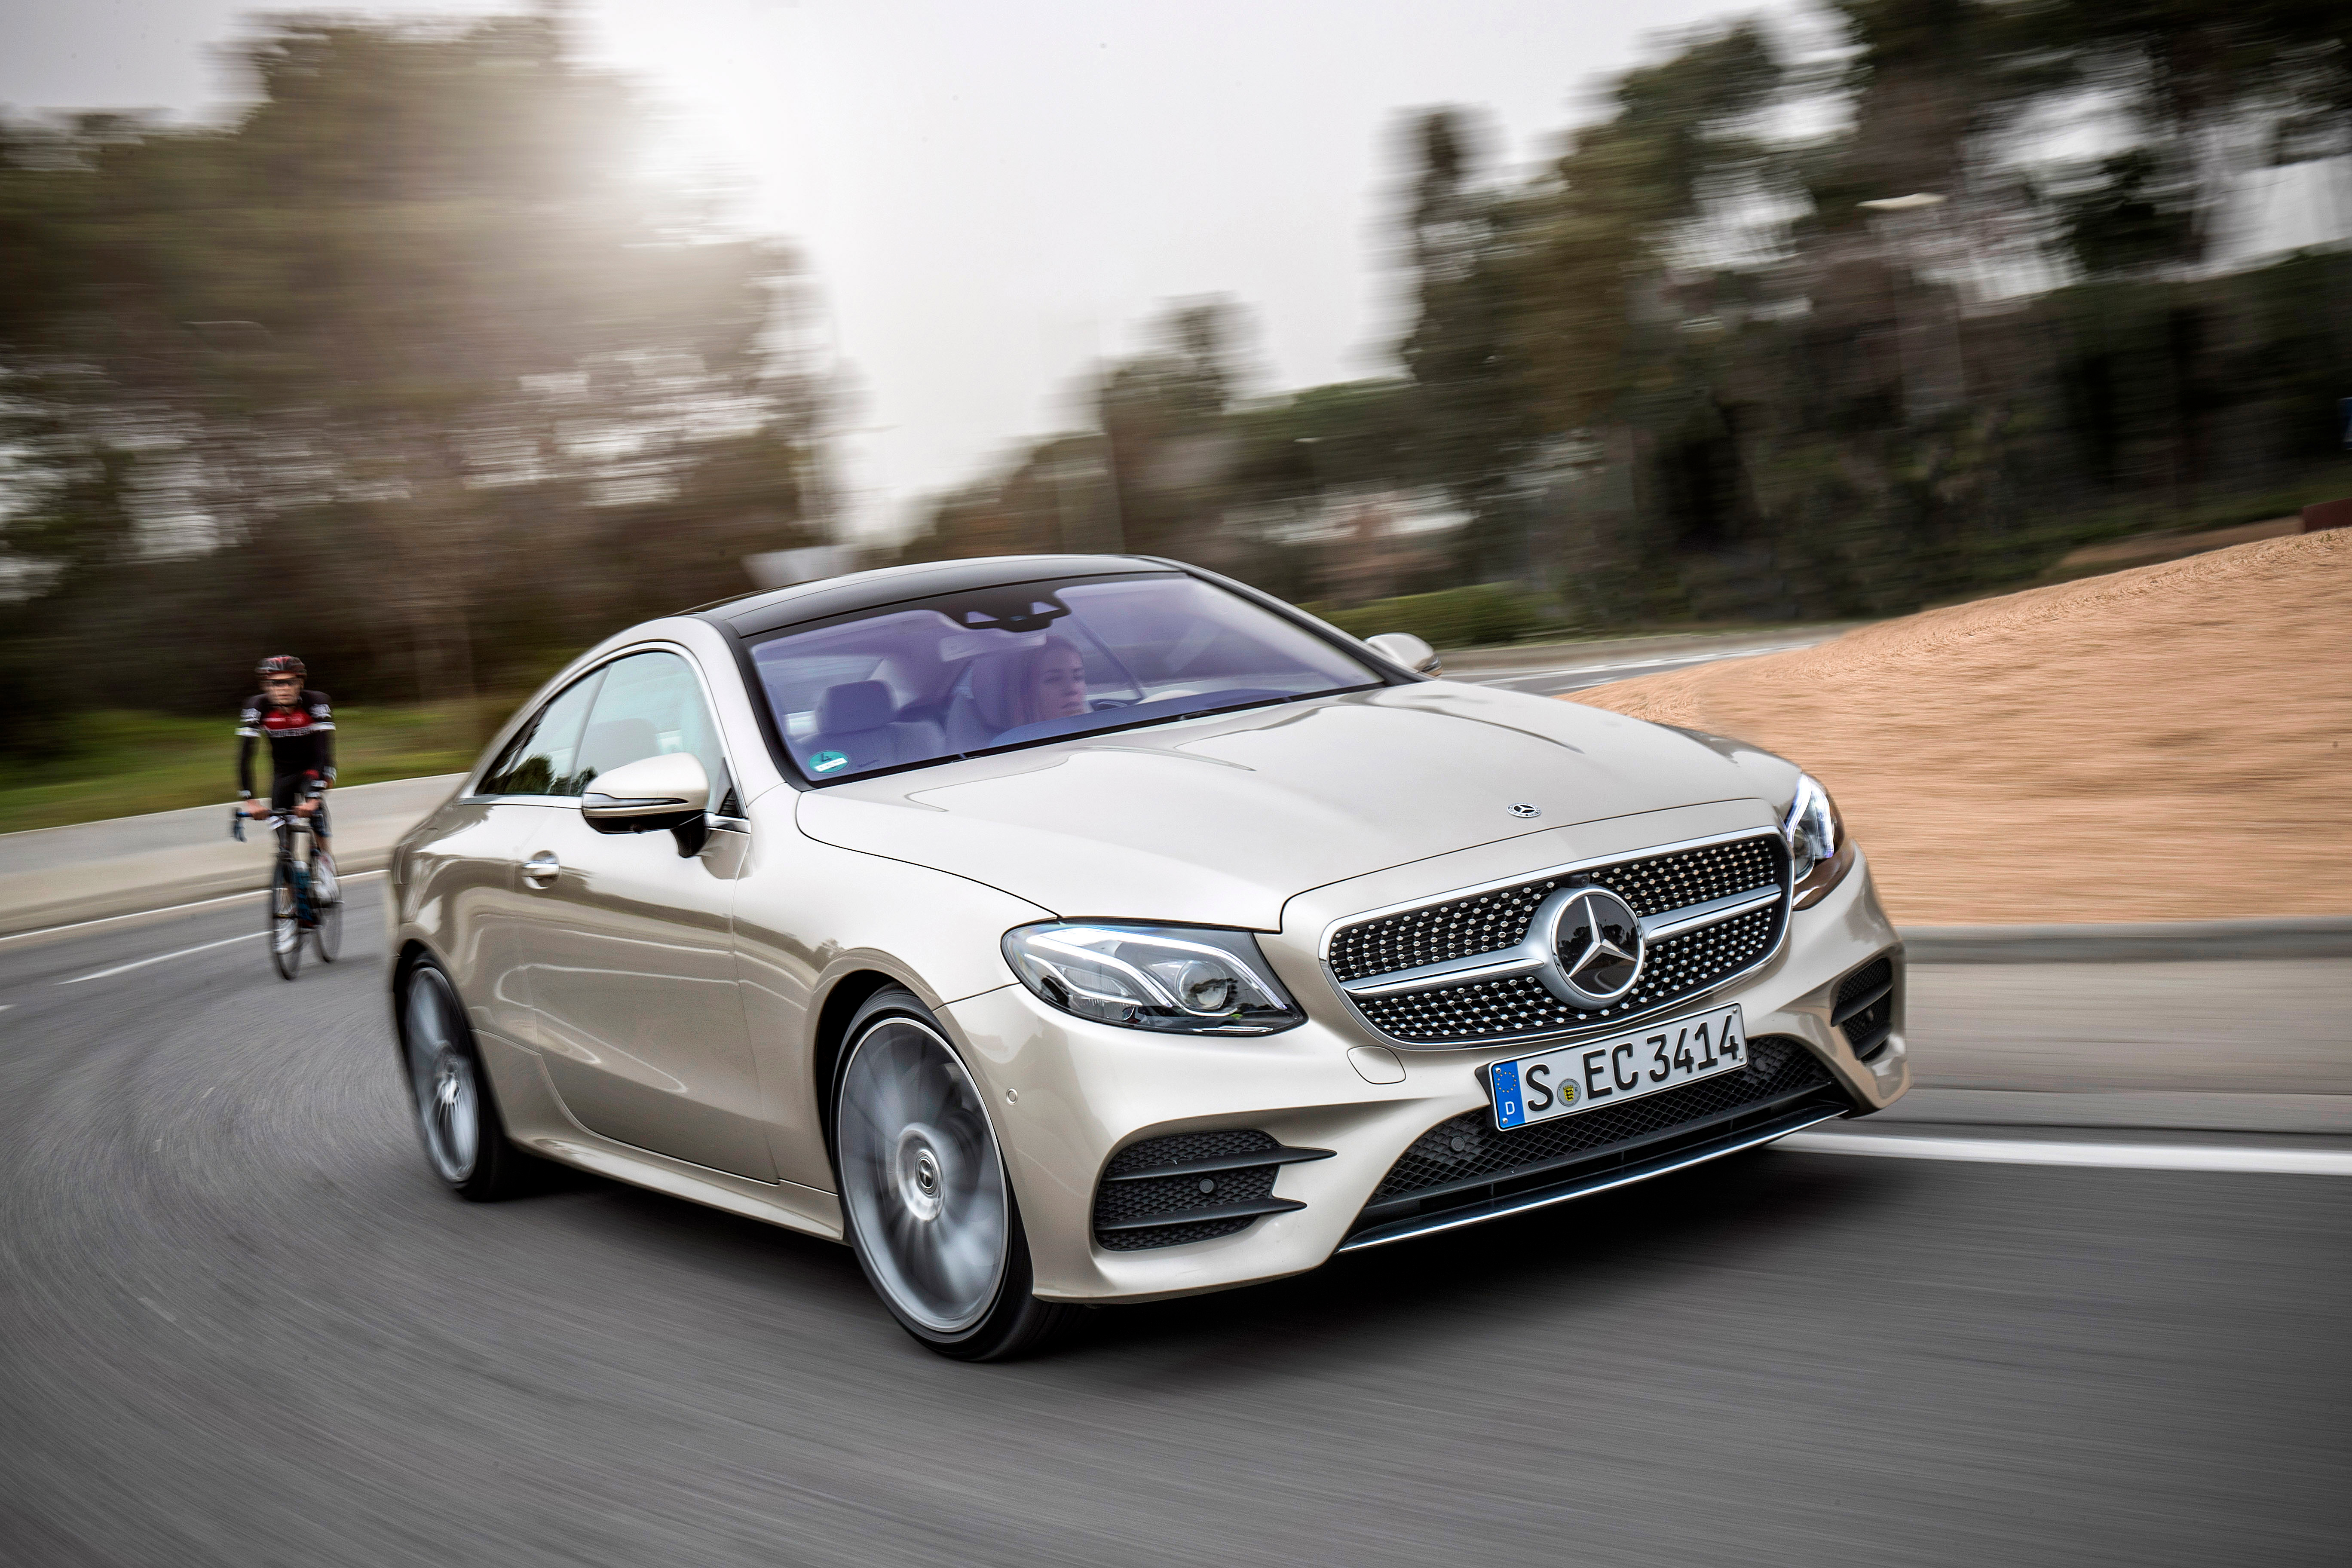 video c238 mercedes benz e class coupe walk around tour new gt to reach malaysia in q3 2017. Black Bedroom Furniture Sets. Home Design Ideas